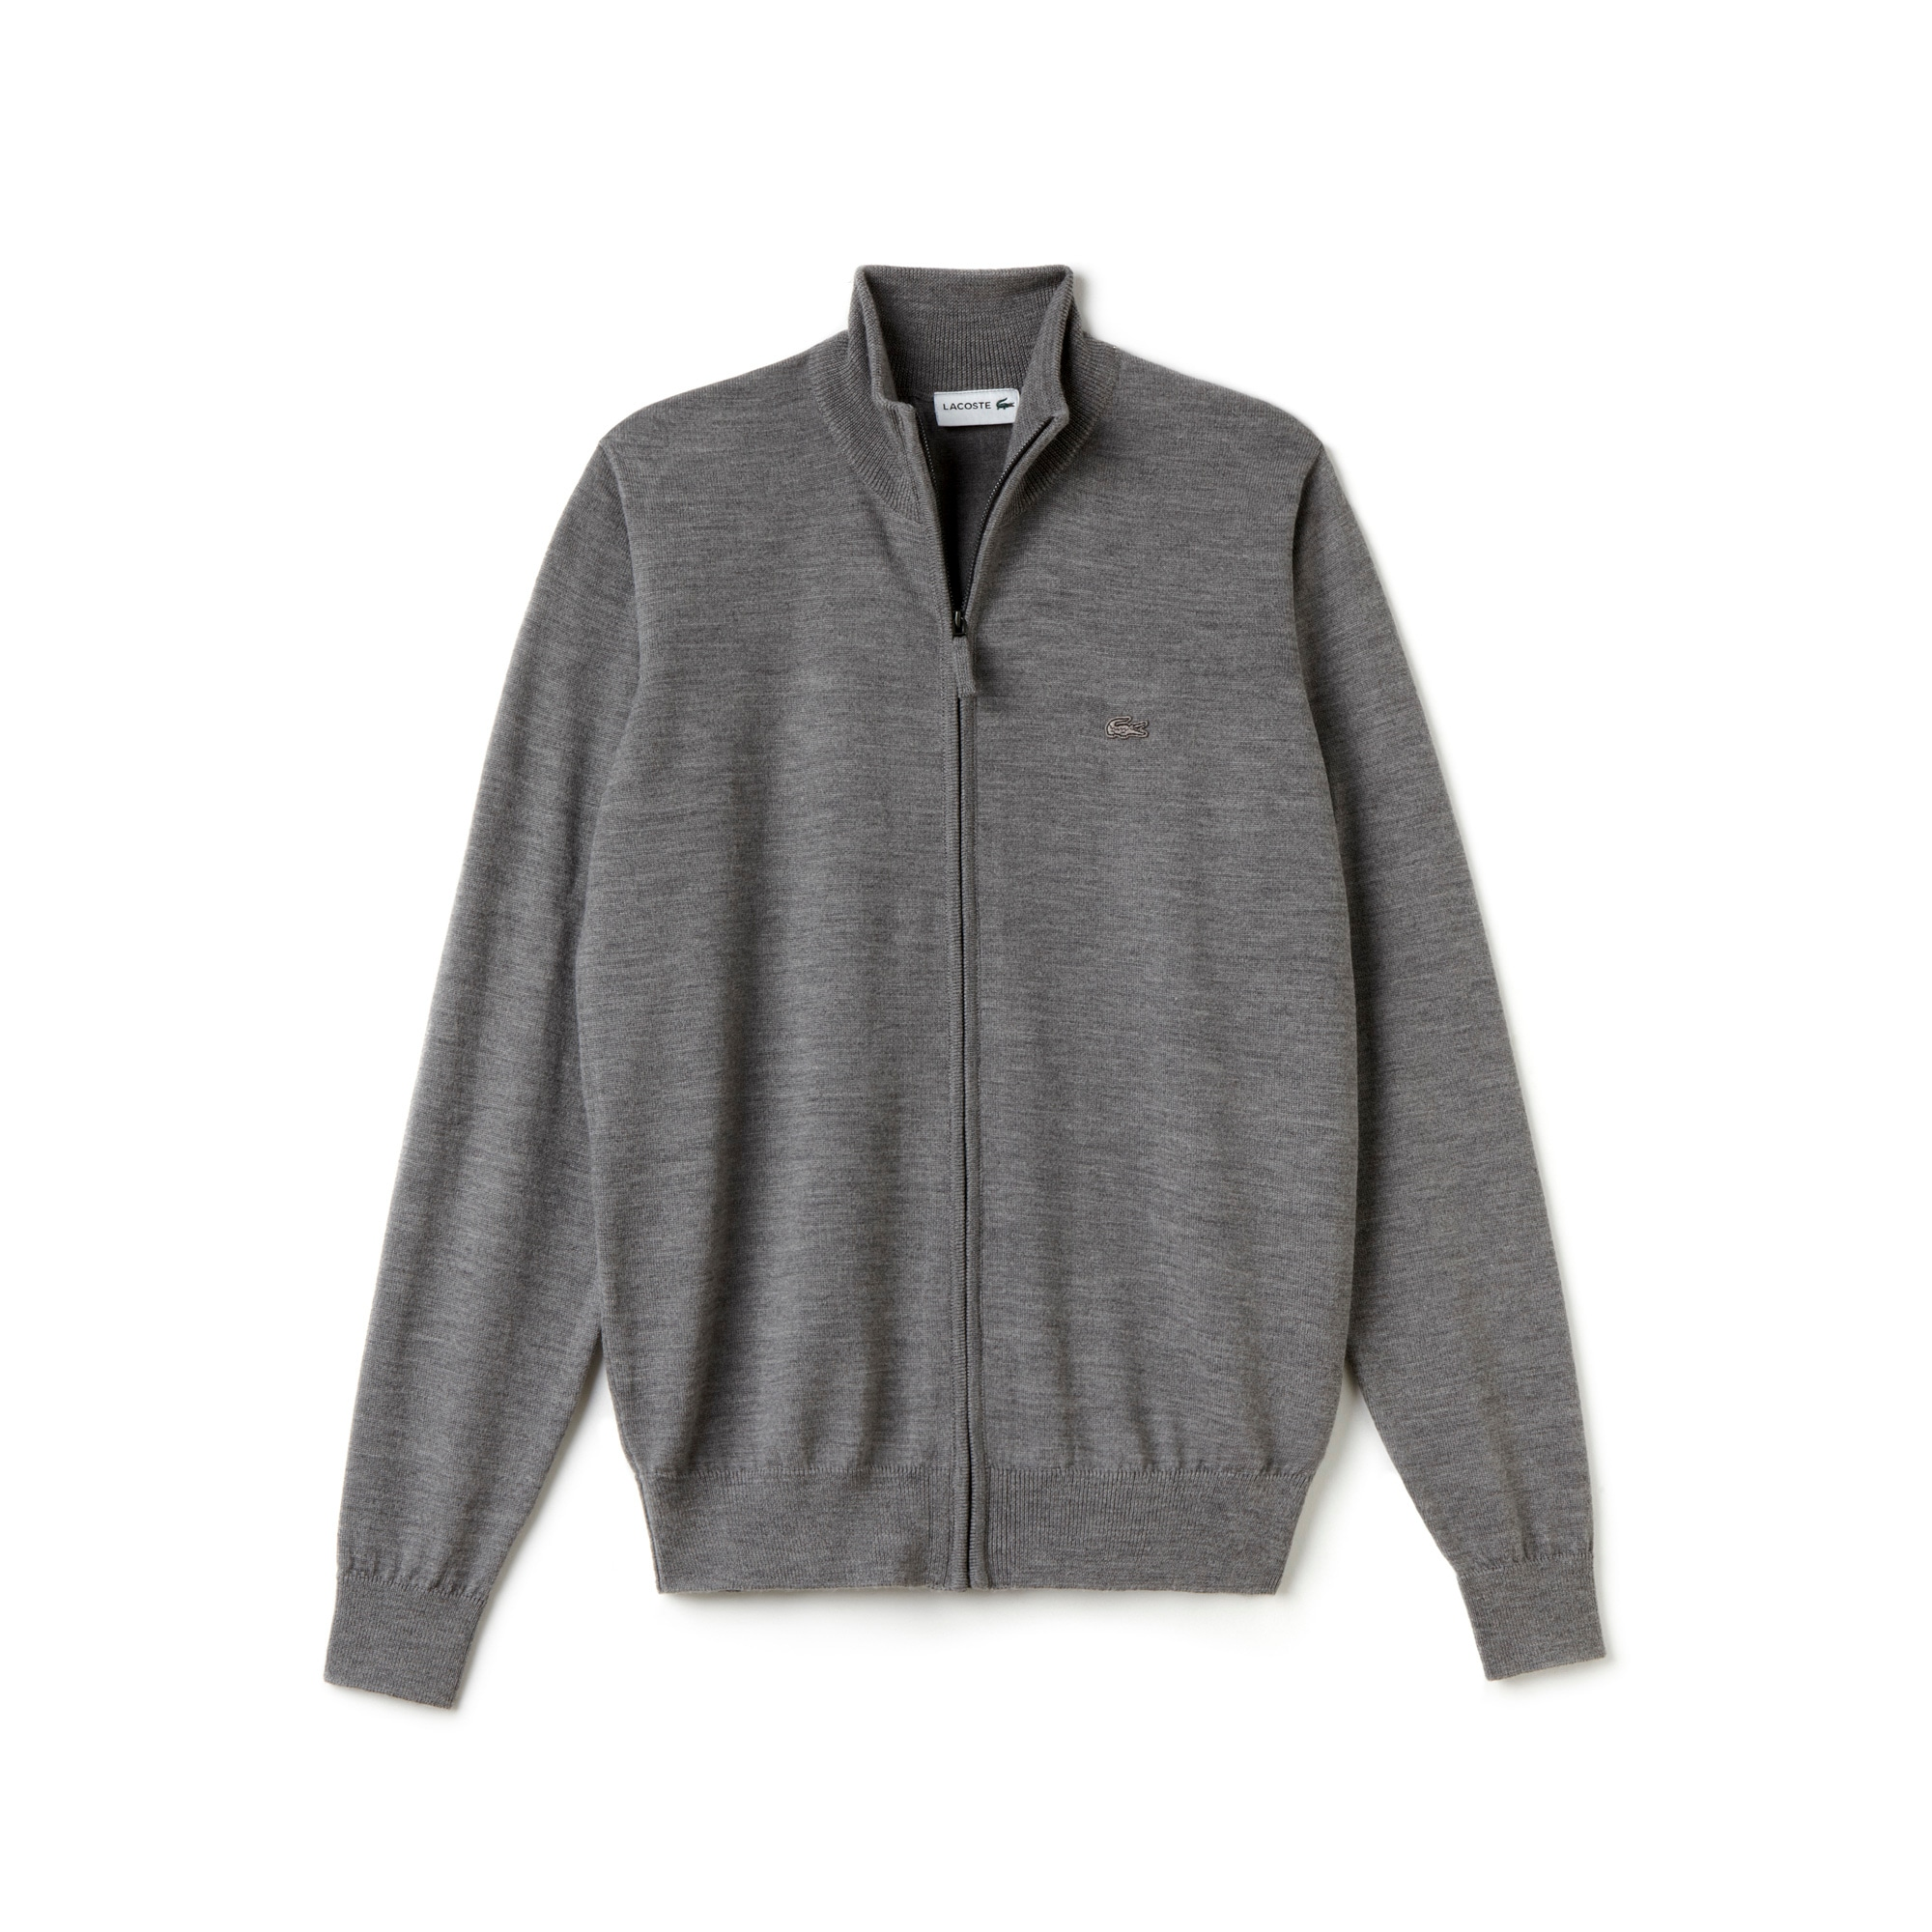 Men's Stand-Up Collar Wool Jersey Zippered Cardigan